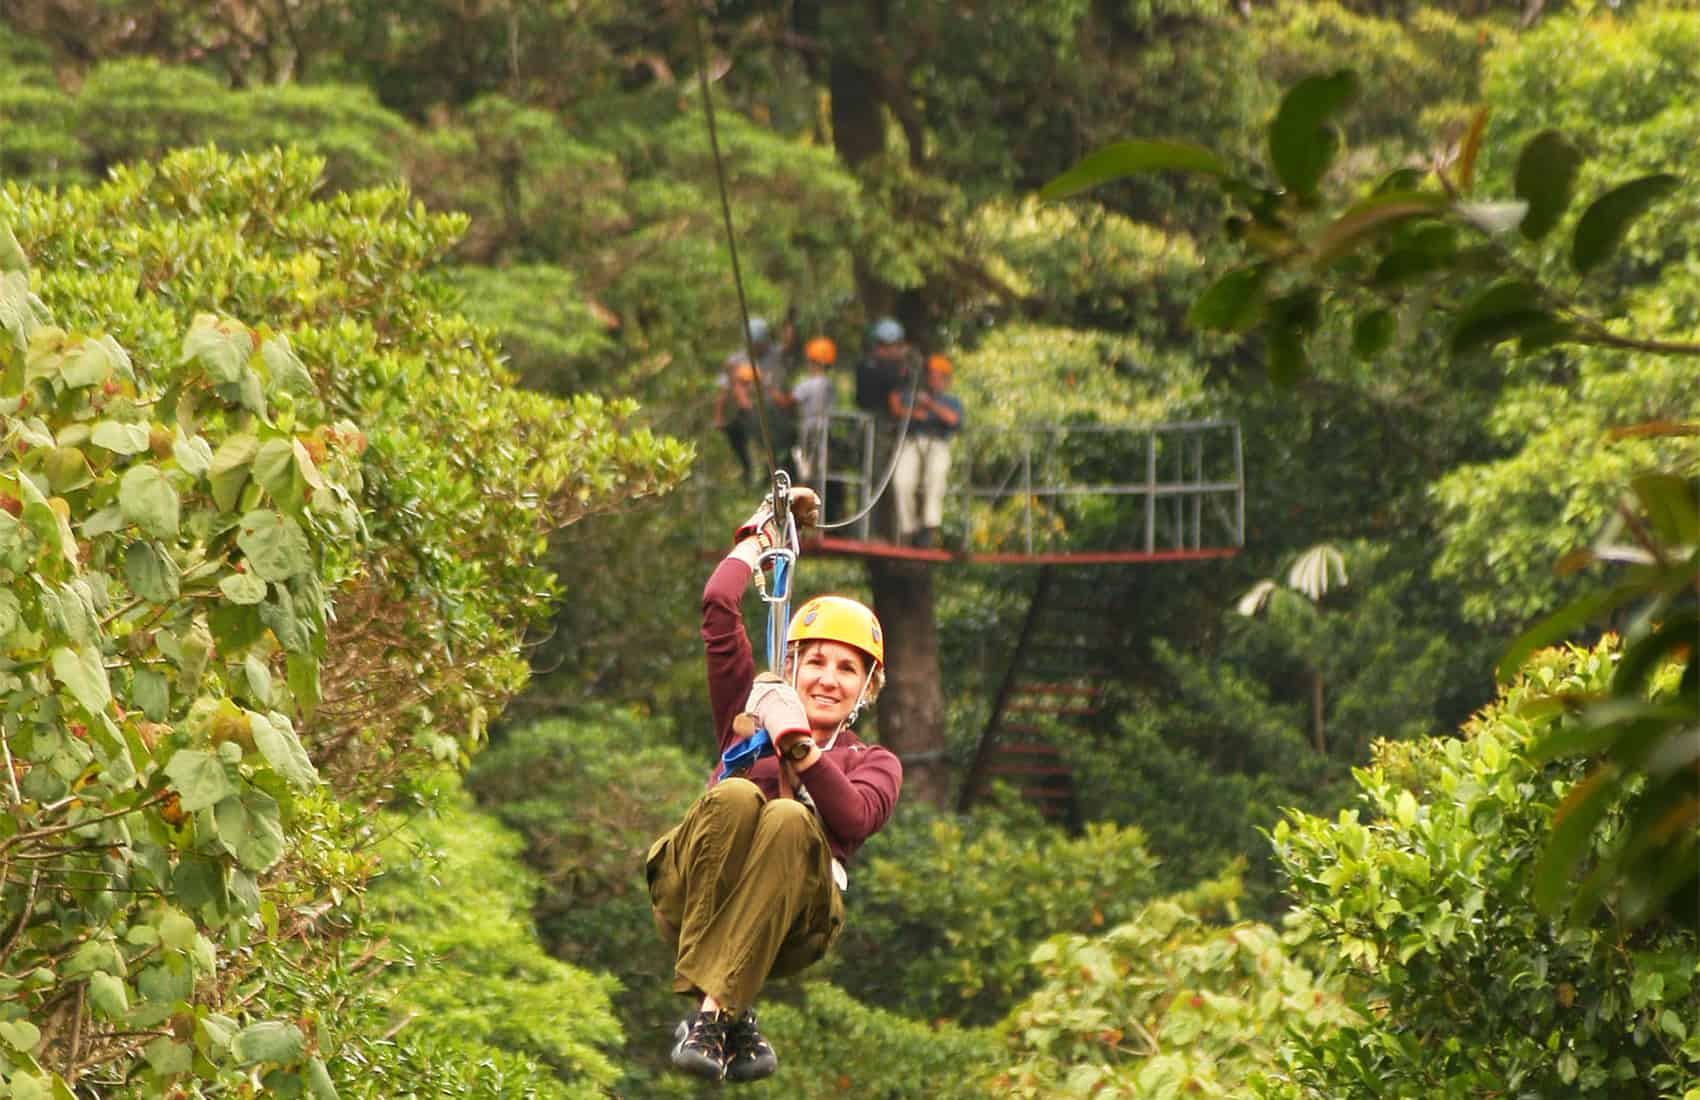 Strap on your helmet The tale of ziplining in Costa Rica is a fascinating one. (Ronald Reyes/The Tico Times) & How the jungle canopy zipline was invented in Costa Rica and then ...